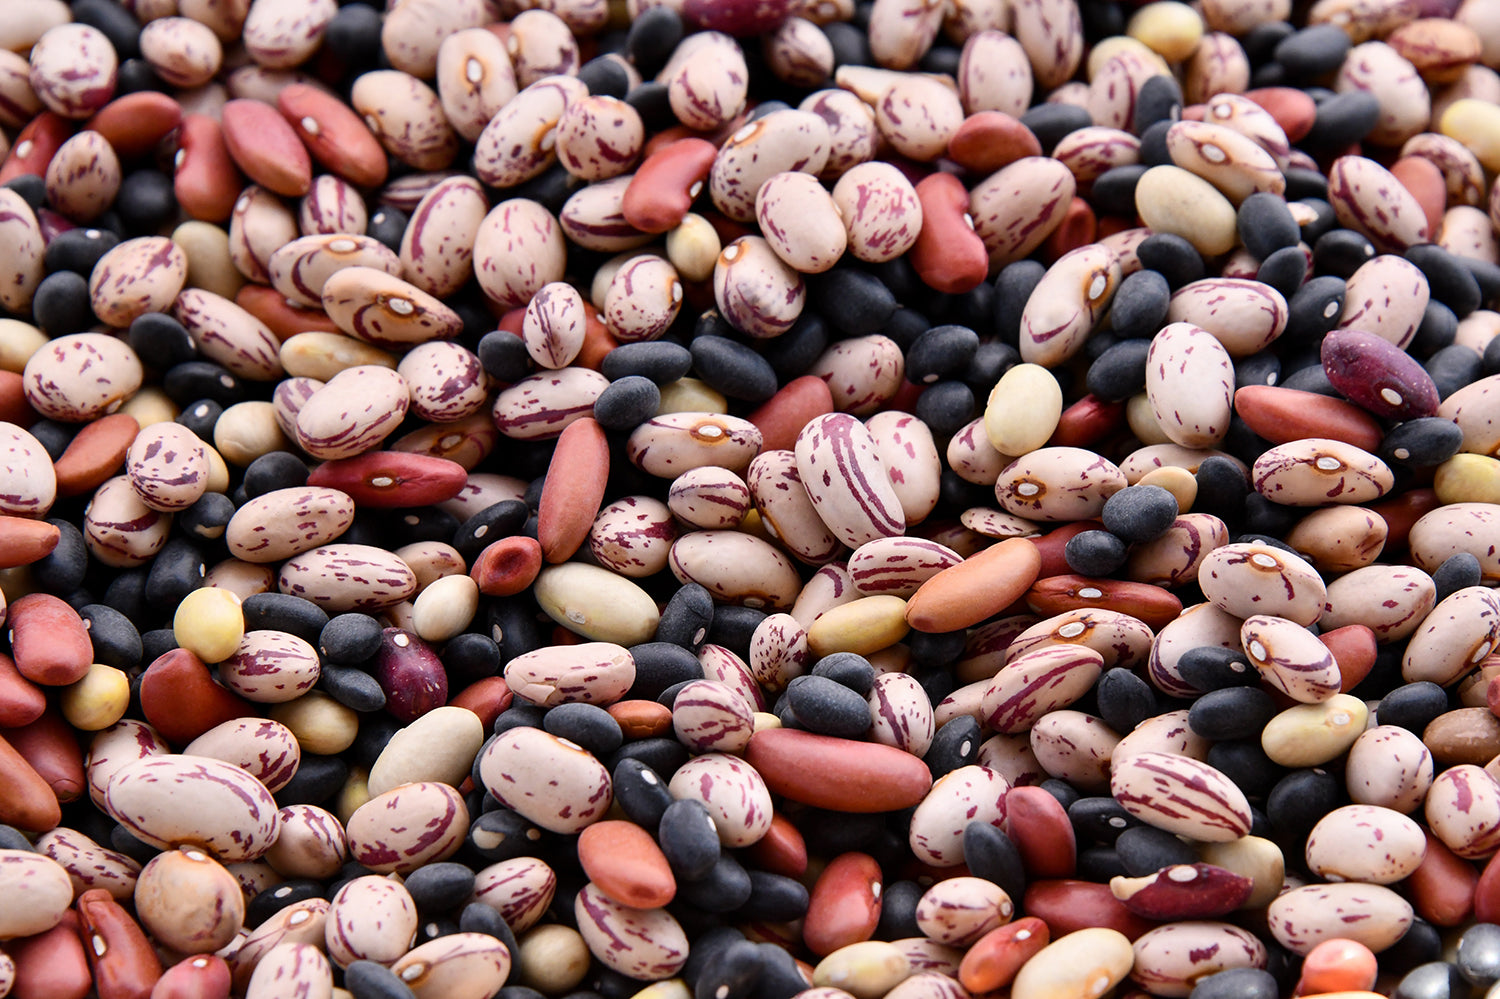 Are Beans Keto? What You Need To Know About Legumes And Vegetables